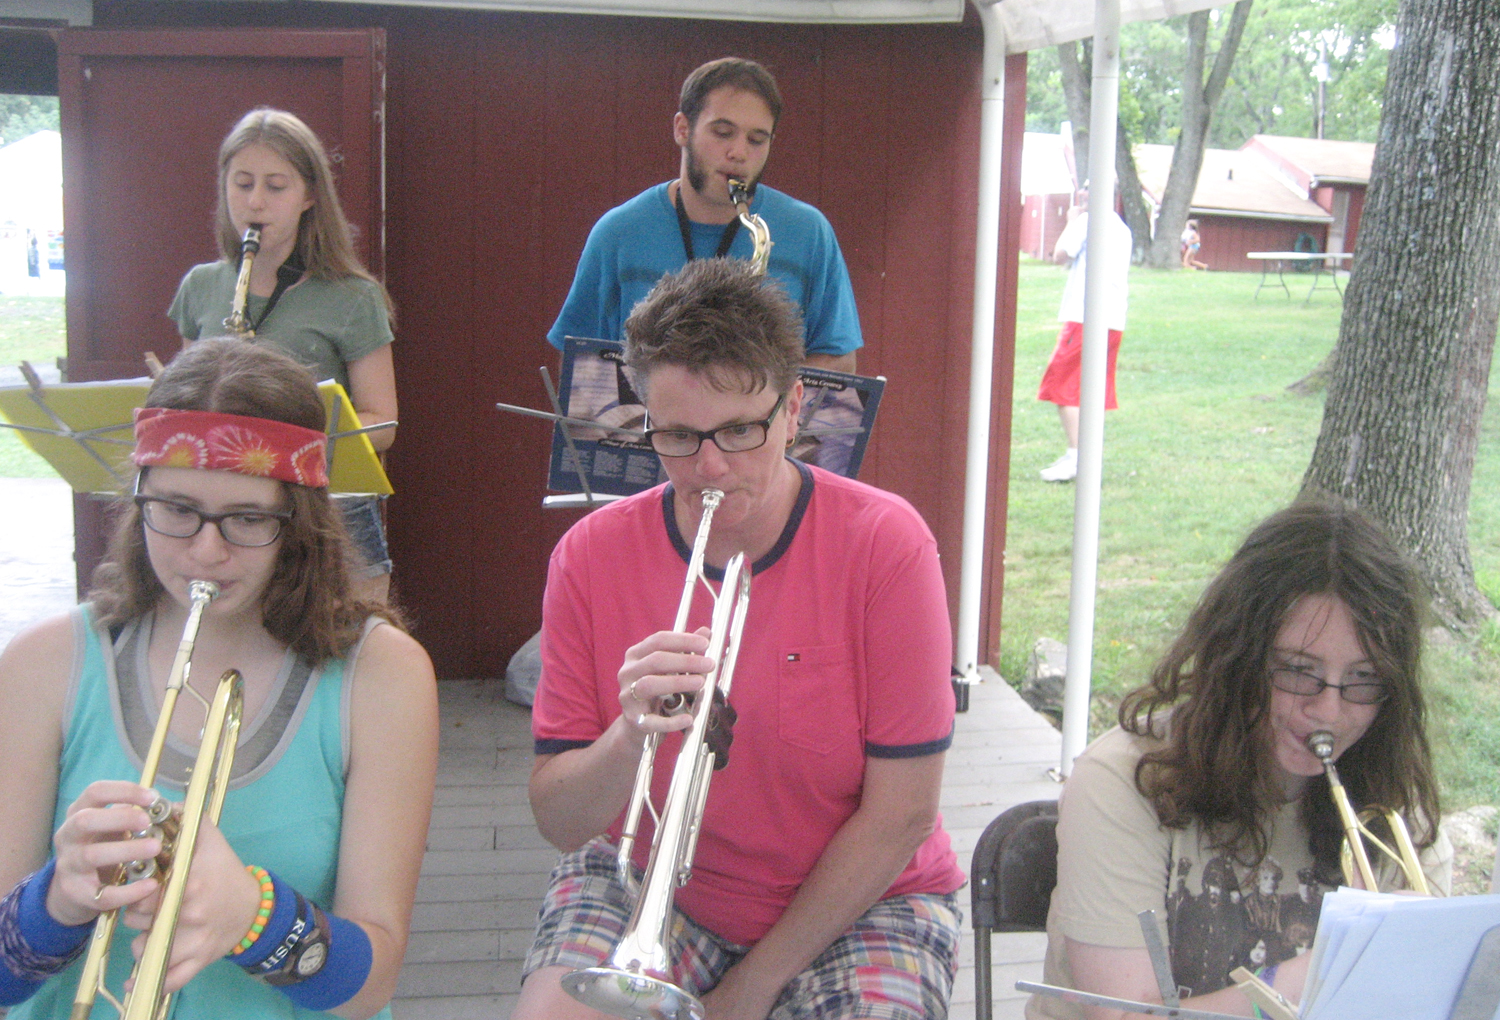 Orchestra_D_081415_IMG_9498.jpg